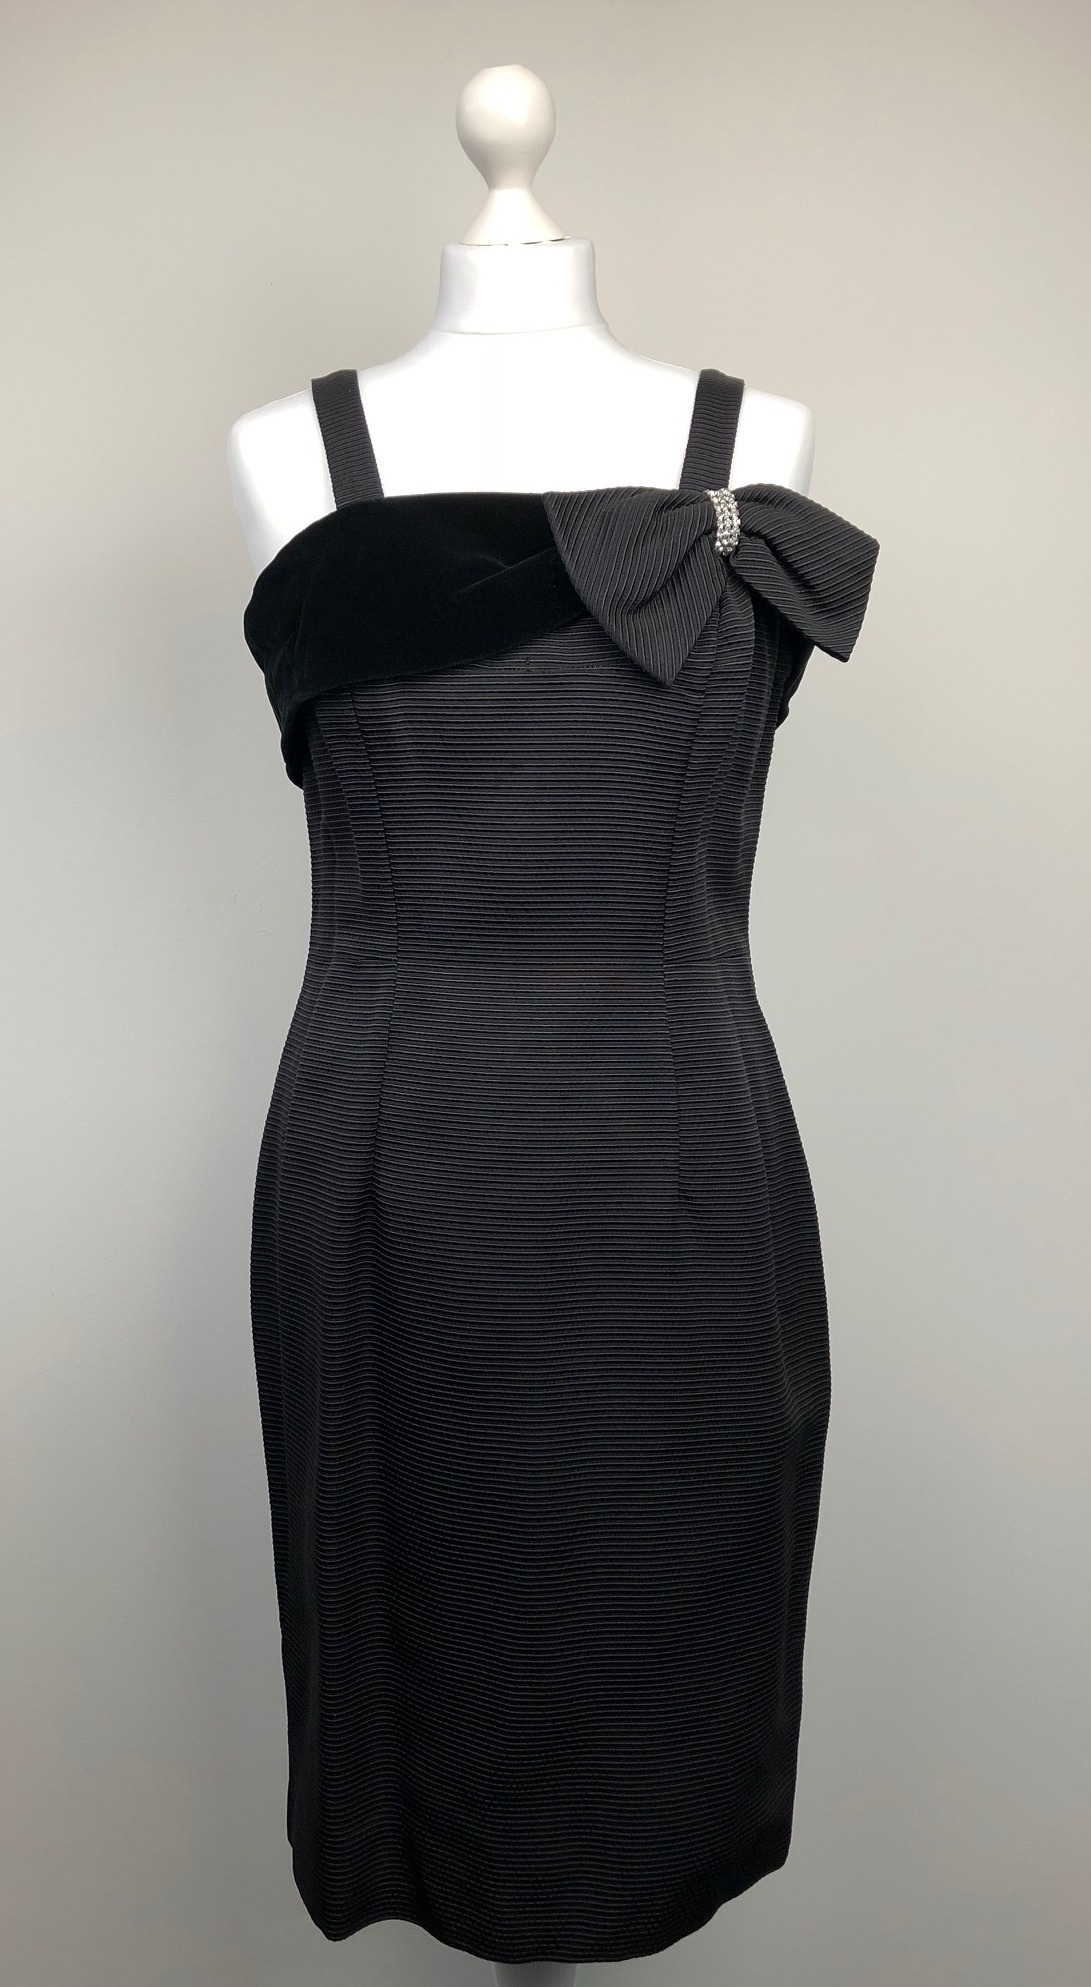 Fein Black Evening Cocktail Dresses Ideen - Brautkleider Ideen ...